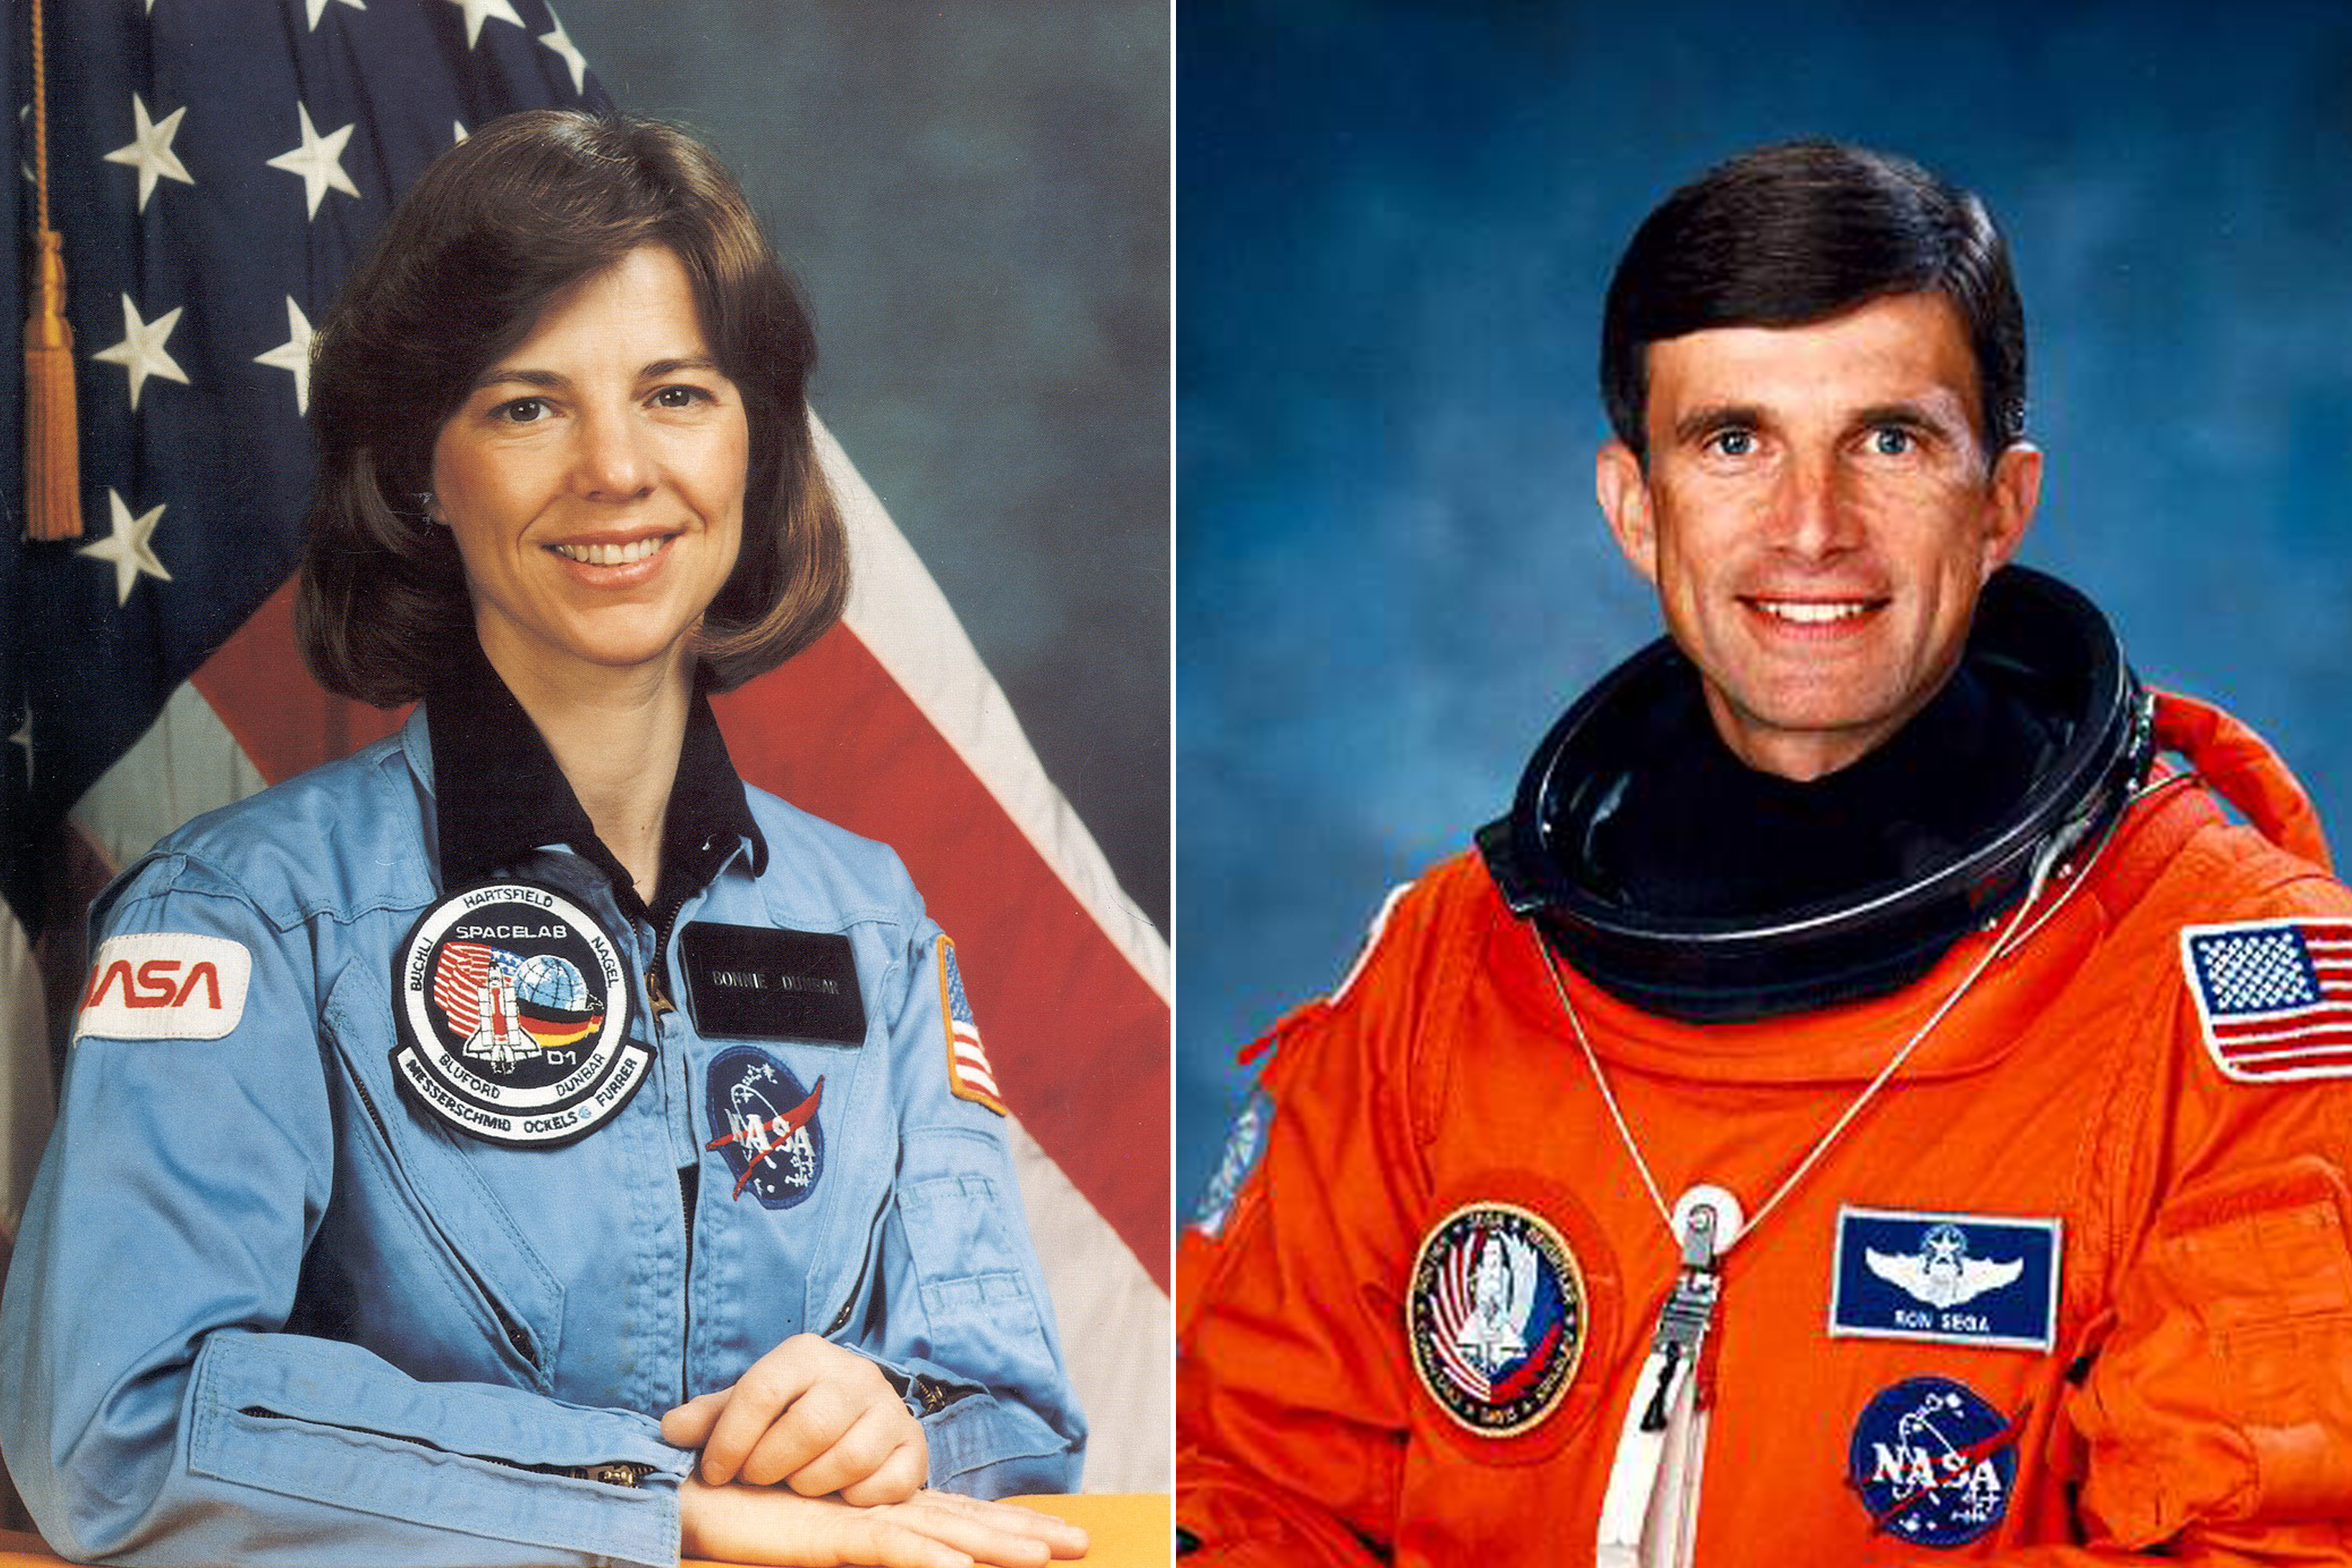 Bonnie Dunbar and Ron Sega were married in 1988.  Dunbar is a veteran of five flights, logging more than 1,200 hours in space.  Sega was an astronaut for five years, during which he flew aboard STS-60, the first joint U.S./Russian Space Shuttle Mission, launched in 1994.